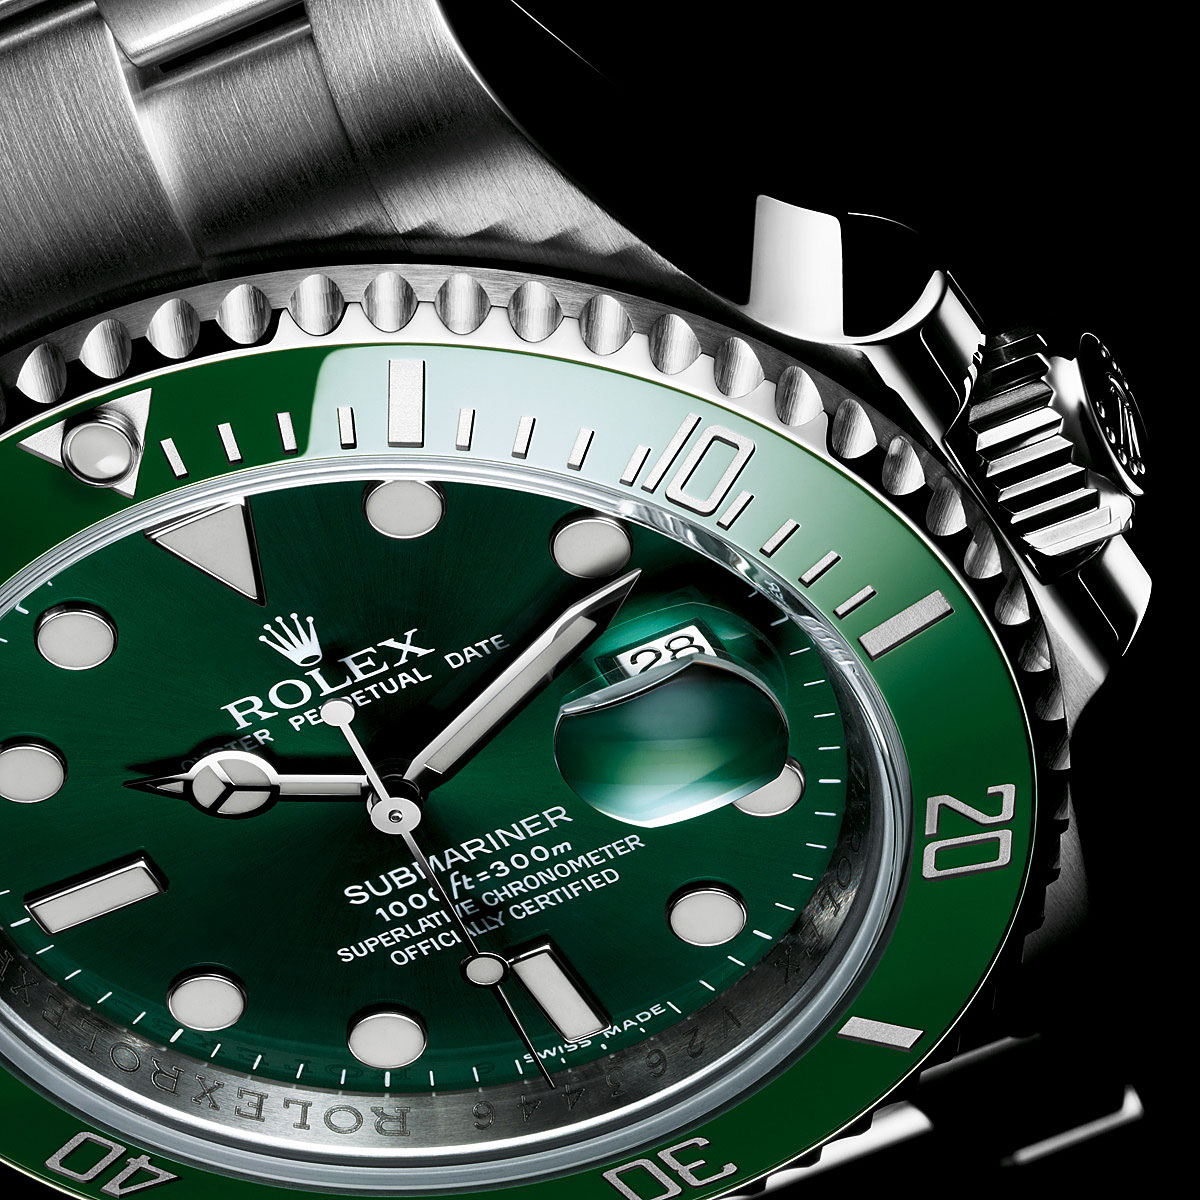 Rolex Oyster Perpetual Submariner Diving Watch Green